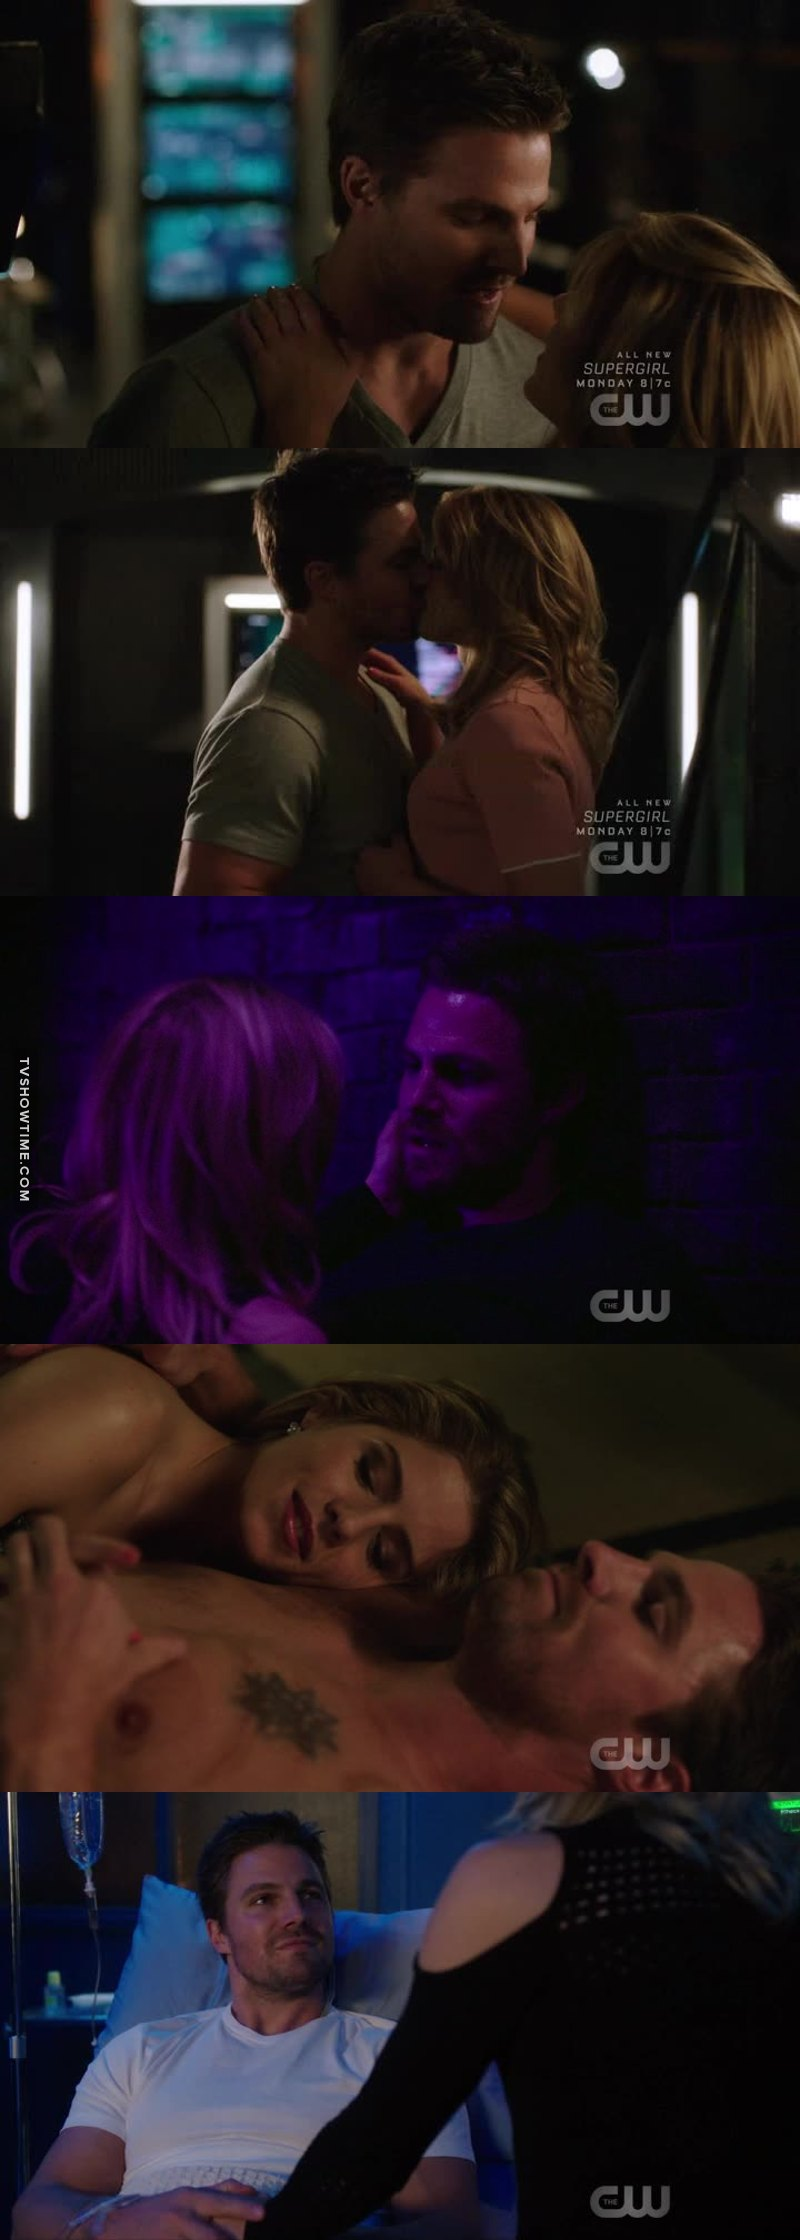 OLICITY IS RISING